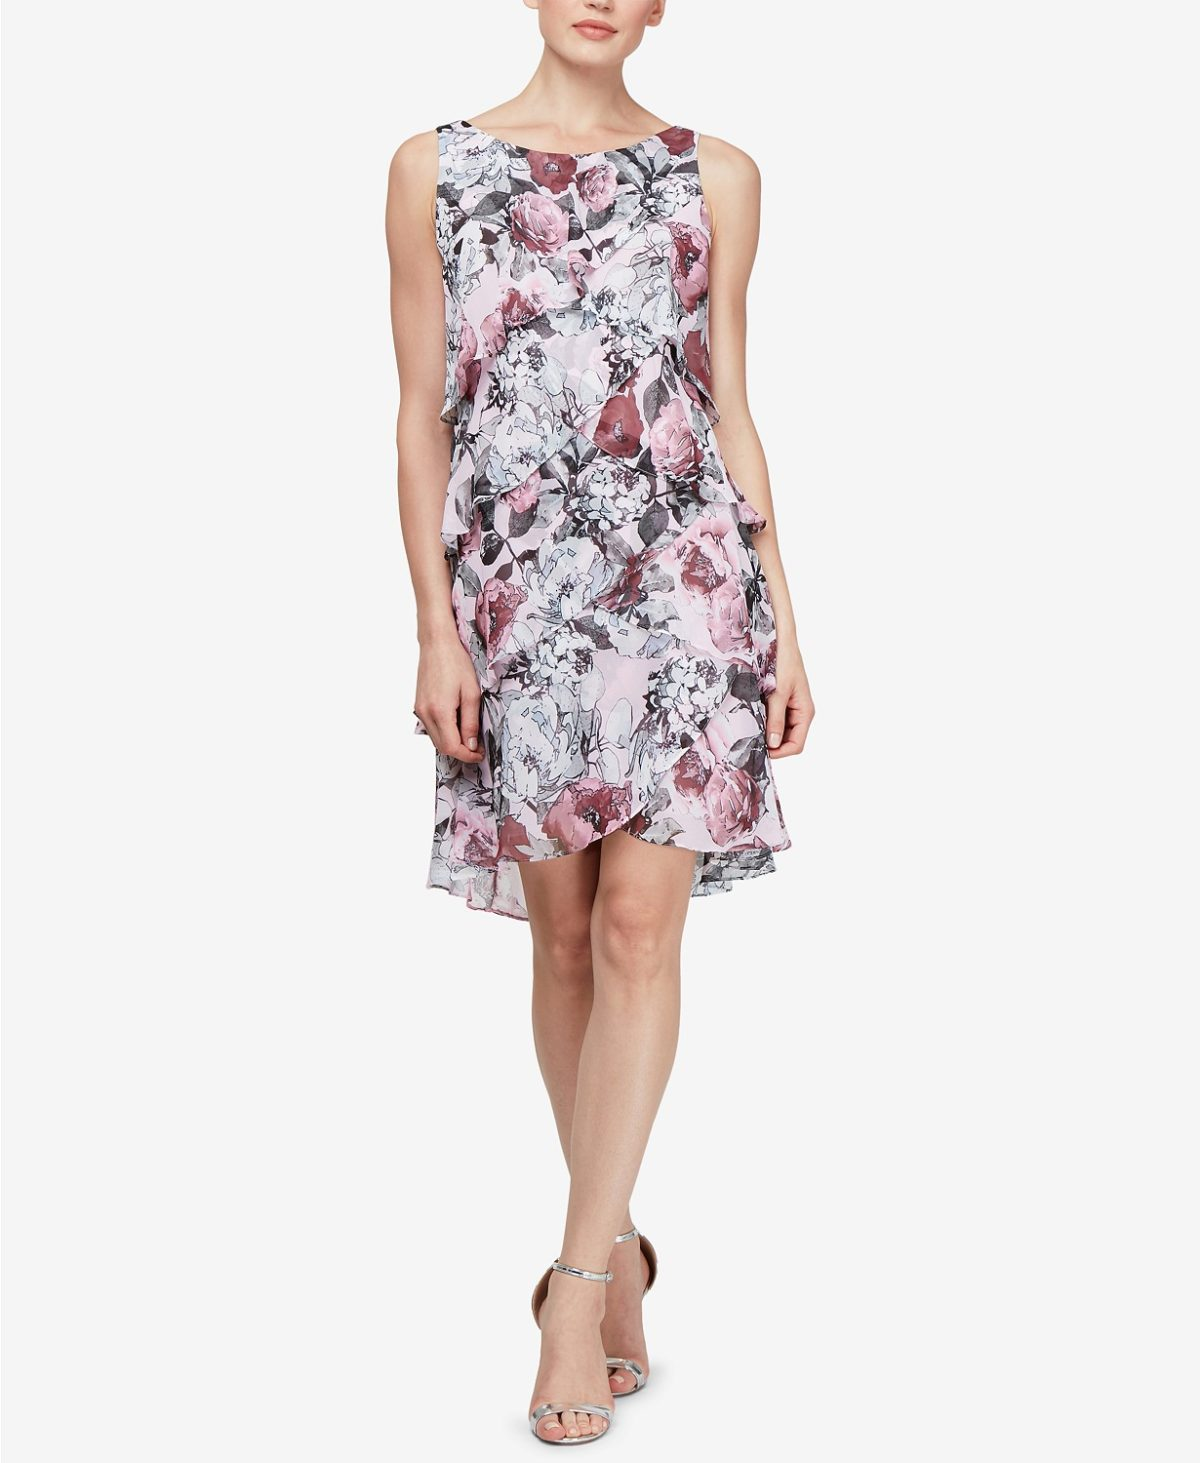 floral-tiered-chiffon-dress-macys-easter-fashion-for-women